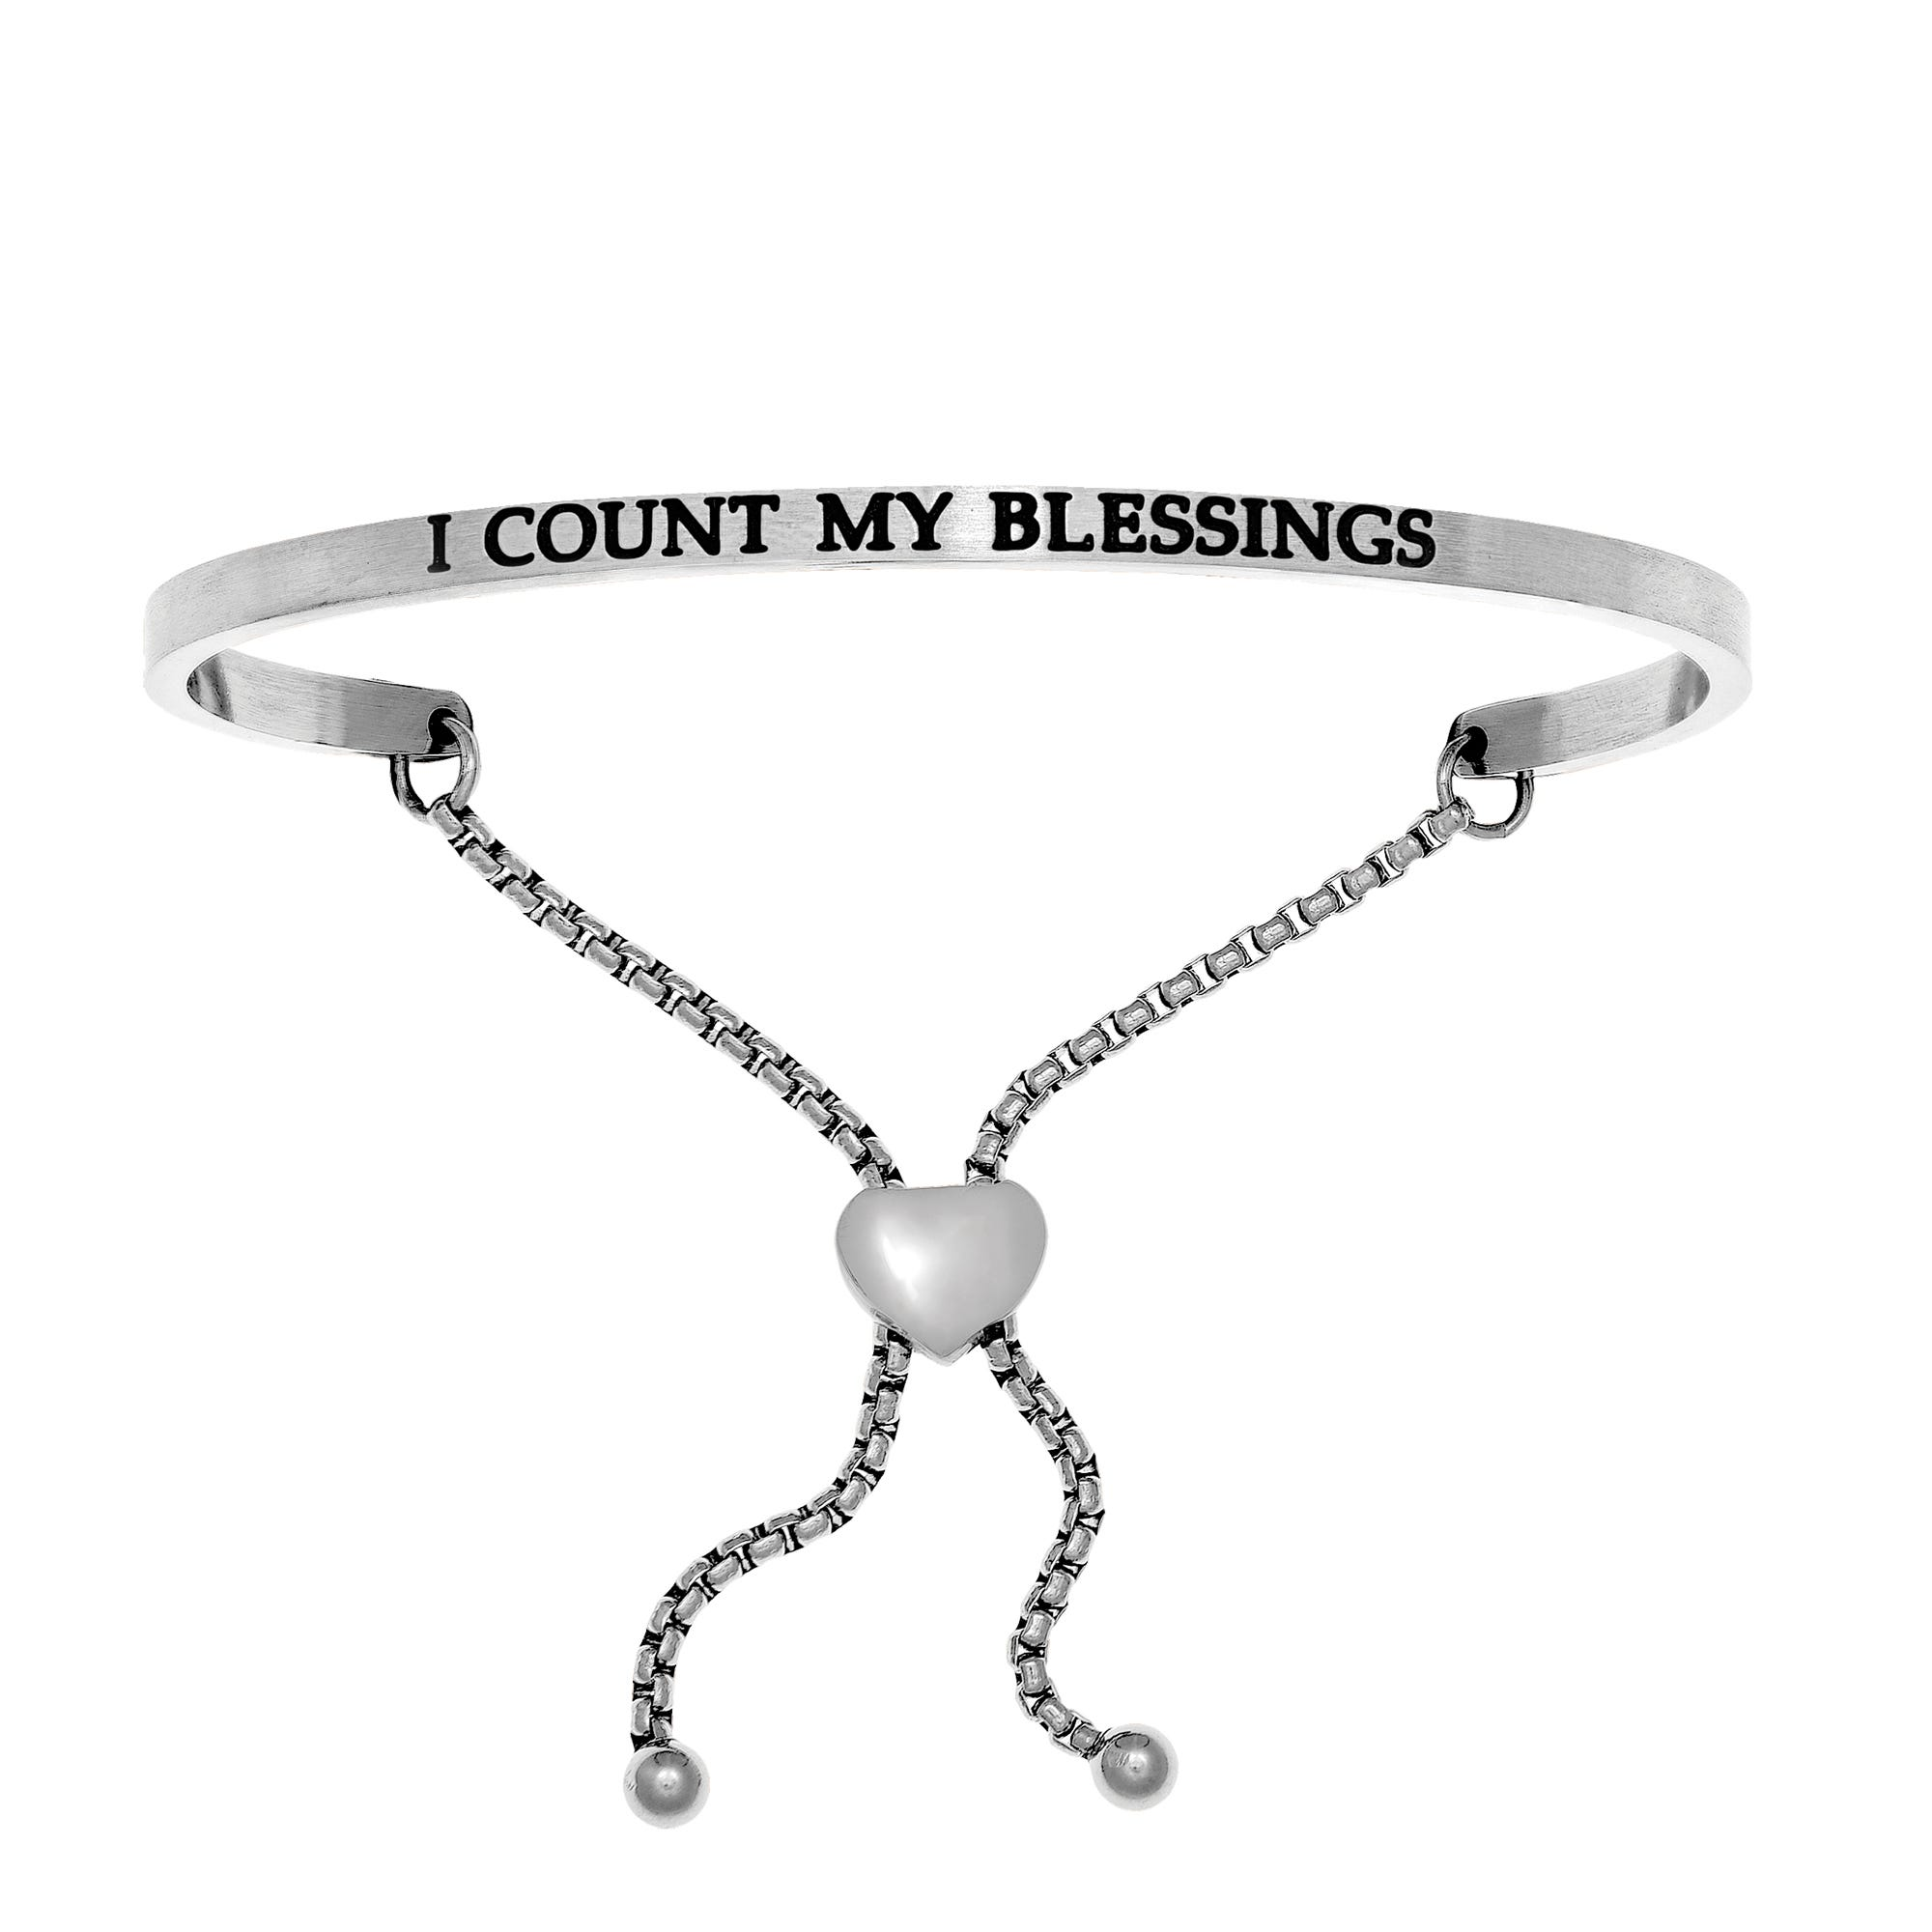 I Count My Blessings. Intuitions Bolo Bracelet in White Stainless Steel